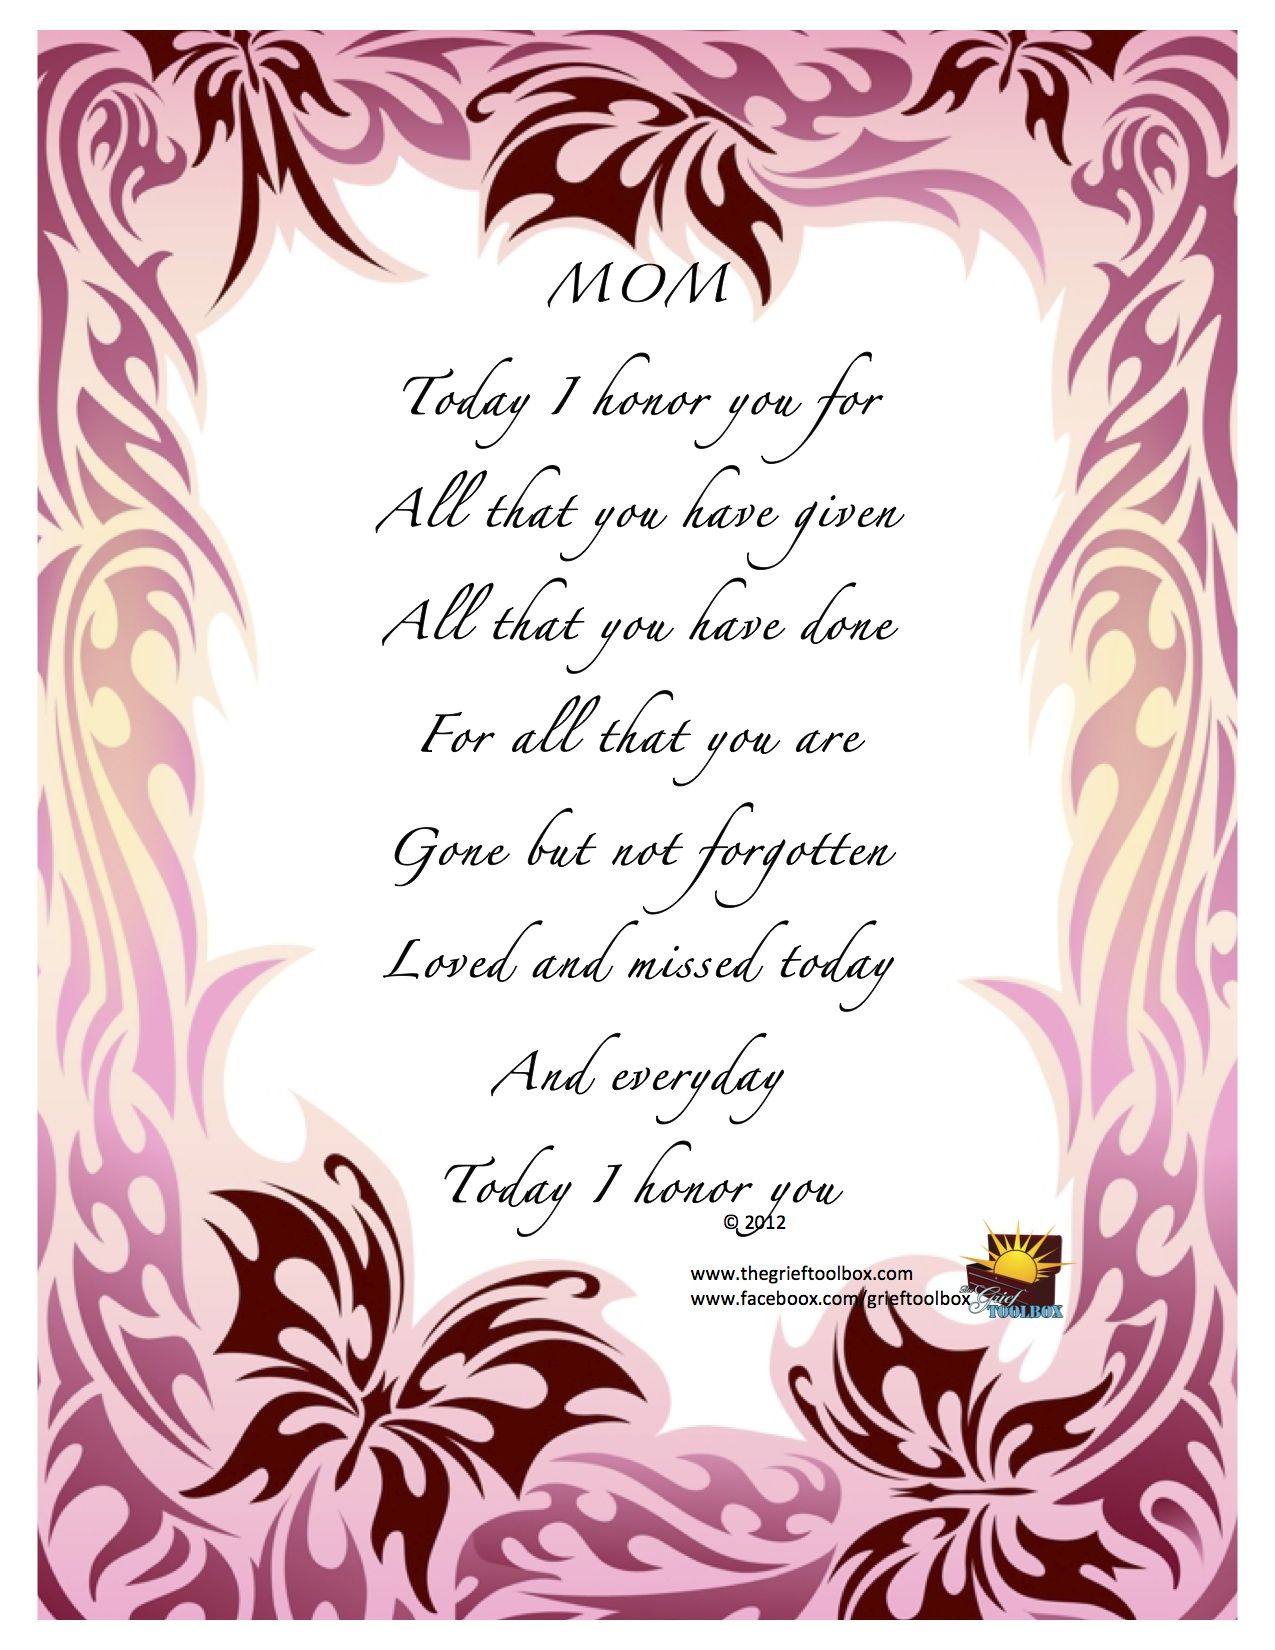 Mother's Day loved missed and honored every day - A Poem ...